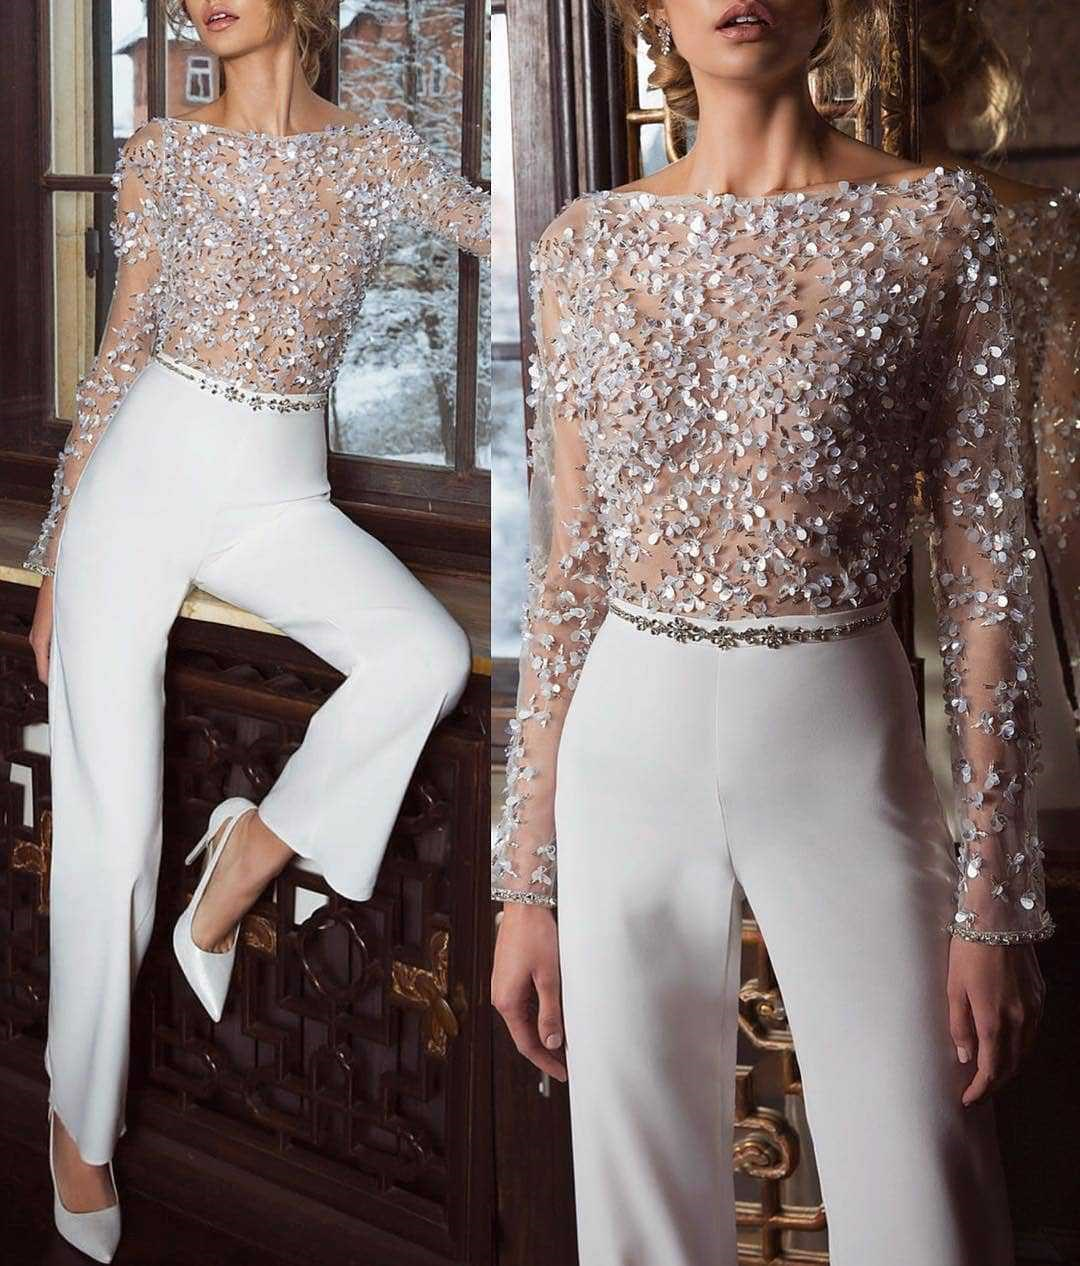 Women Sequins Embellished Mesh Long Sleeve   Jumpsuit   Elegant Long Transparent Slim Fit Romper Overalls Causal Club Party Tops